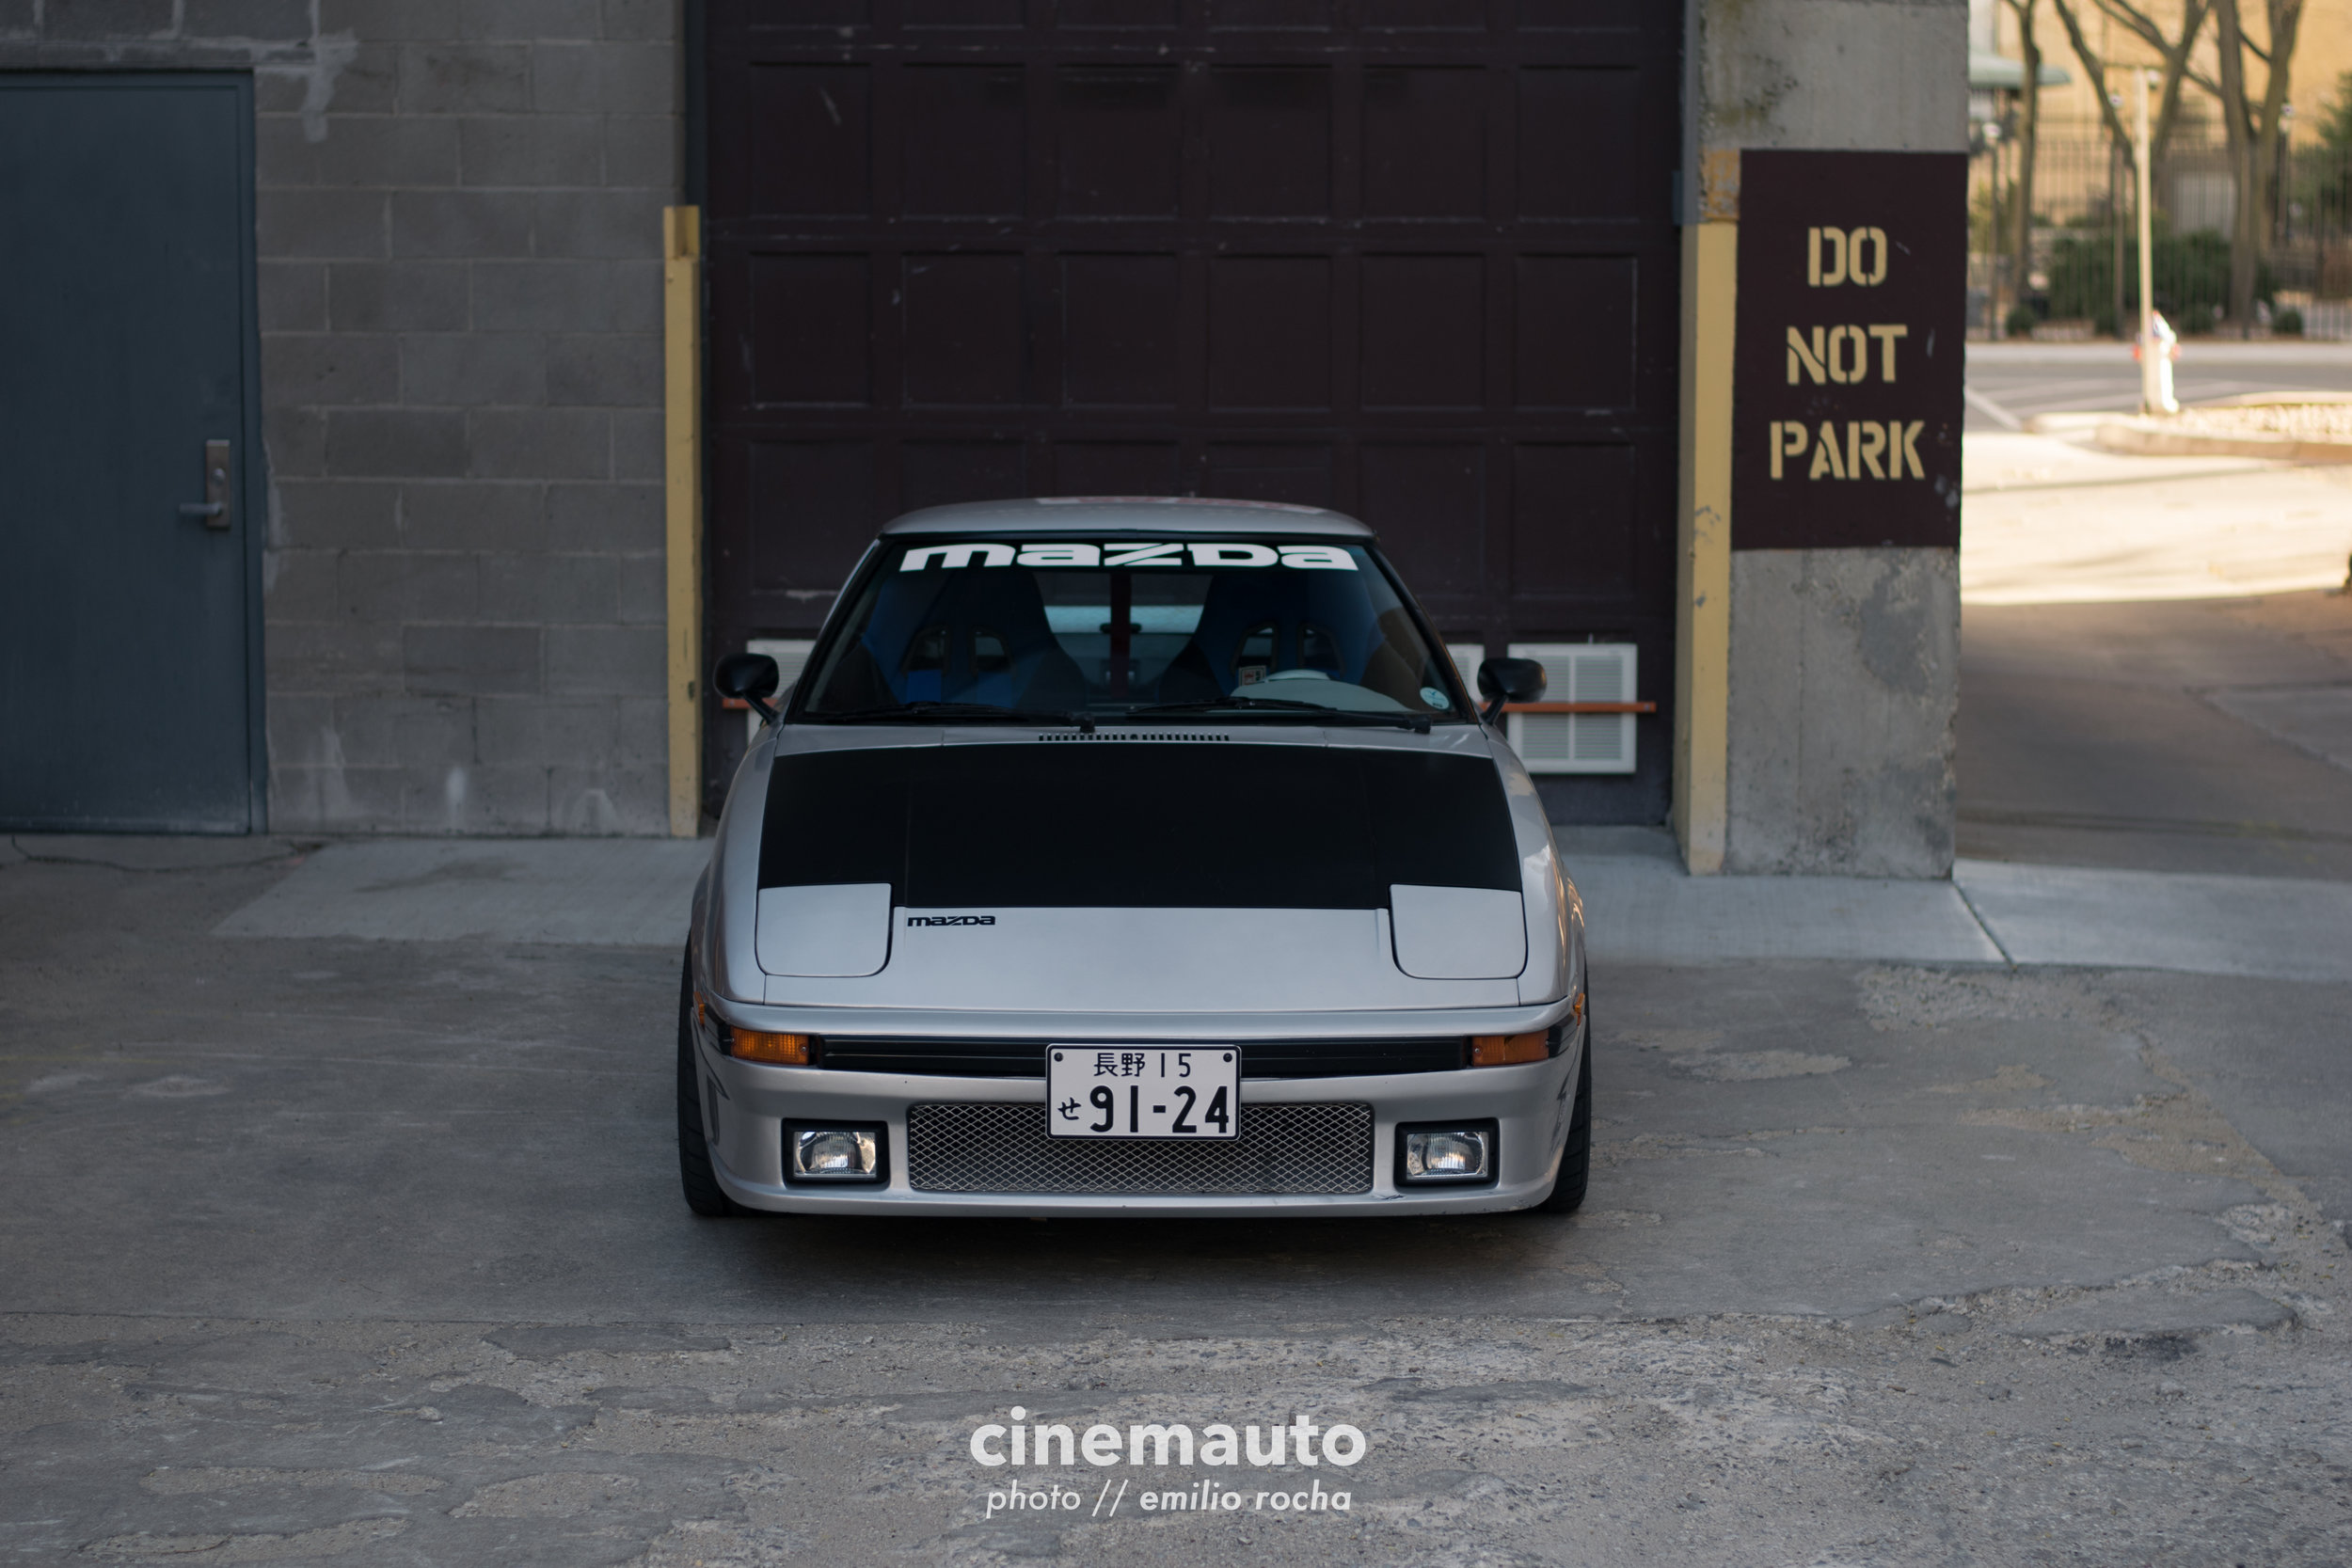 Cinemauto-RX7-1.jpg